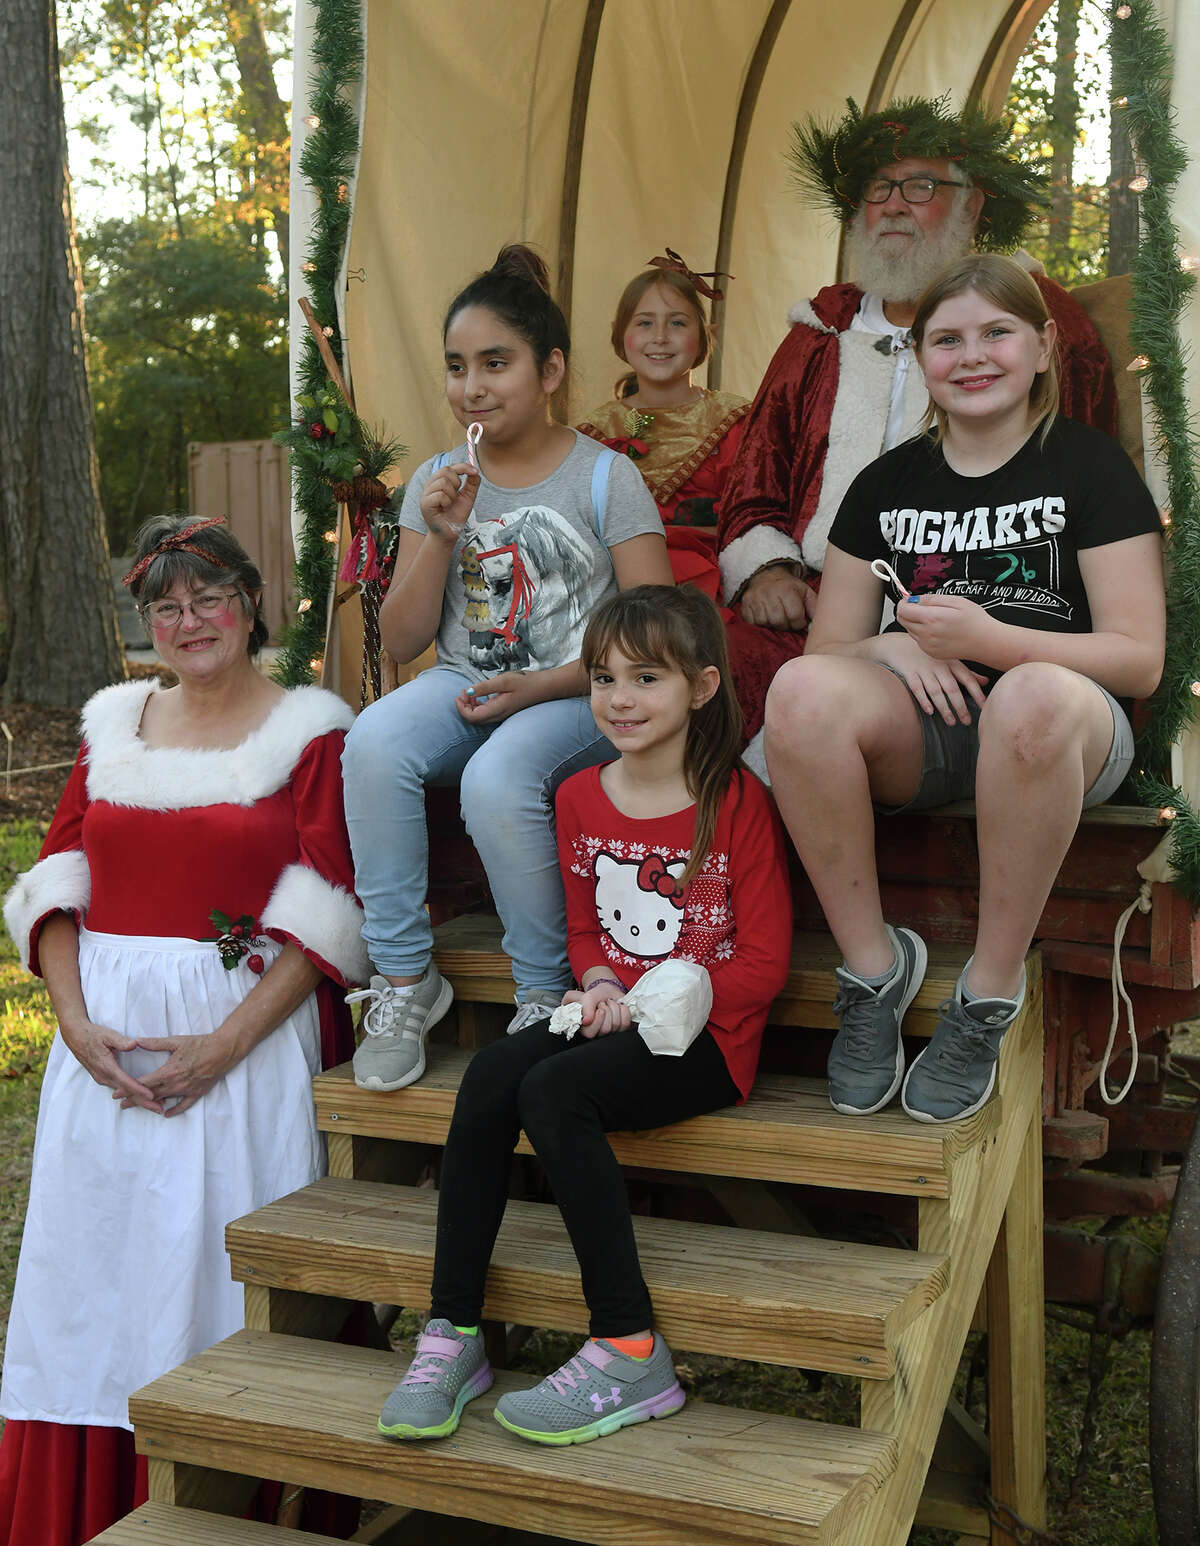 Saint Nicholas (Joe Nelson of Humble), top right, with Mrs. Nicholas (Joe's wife Elaine Nelson), bottom left, and their elf Lillian Monarch, 8, back center, of Conroe, share a photo with Josie Gamez, 10, center left, Kendall Cawood, 9, front right, and Caylin McClellan, 10, center right, all from Cypress, in a covered wagon during the Old-Fashioned Christmas at the Jesse H. Jones Park & Nature Center in Humble on Dec. 2, 2017. (Photo by Jerry Baker/Freelance)